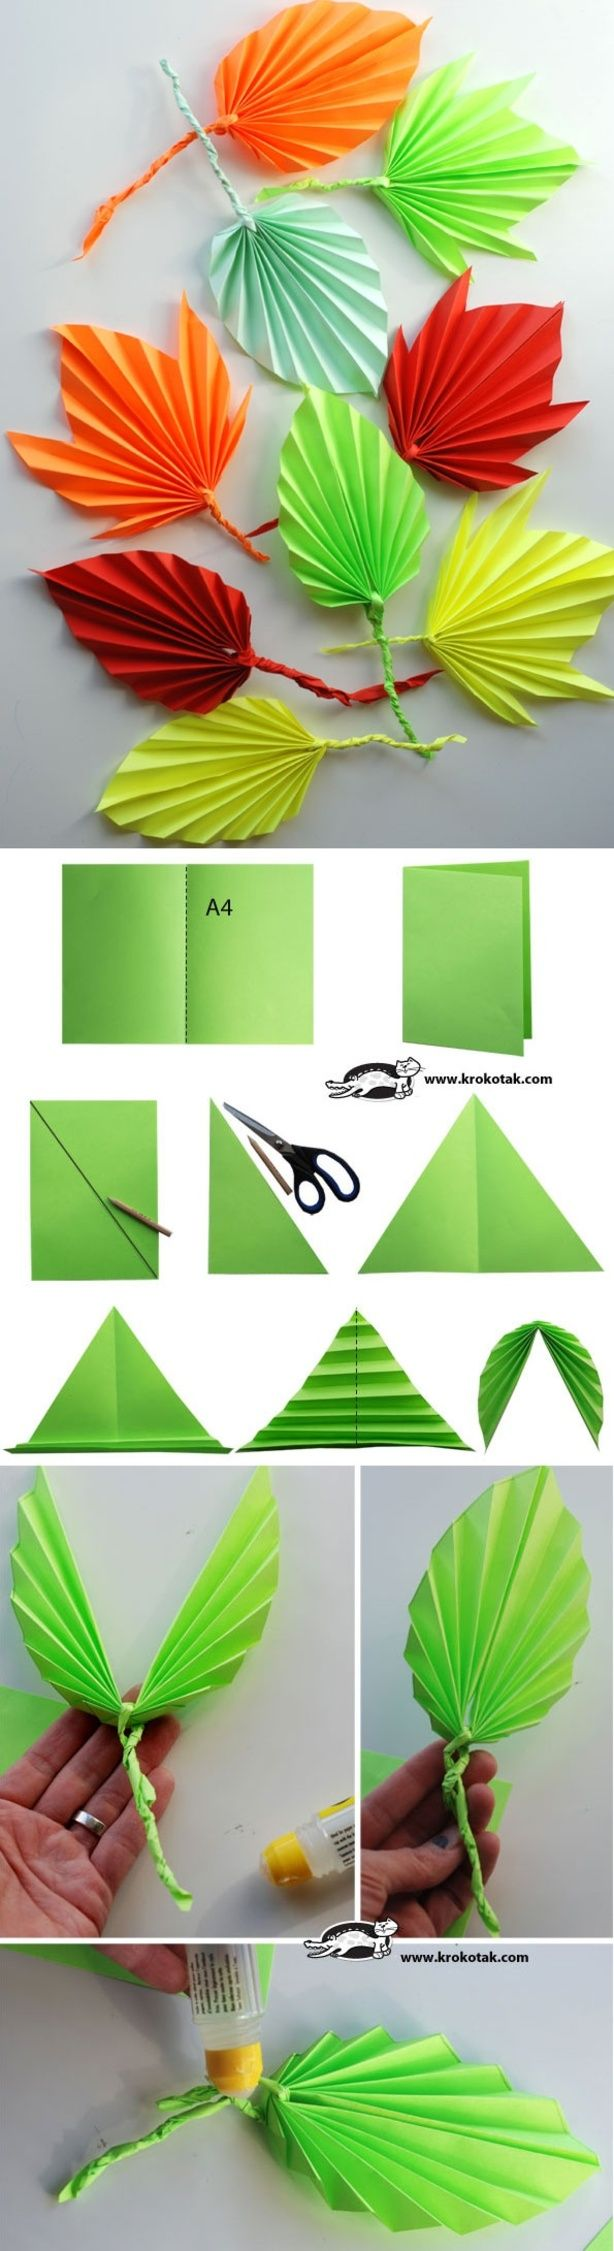 silver lockets 1 fold paper in half  amp  draw diagonal 2  cut along diagonal   use 2 loose triangles to twist into vine 3  open symmetrical triangle and fold 4  leave if folded  twist paper vine or pipecleaner into middle 5  open and tape